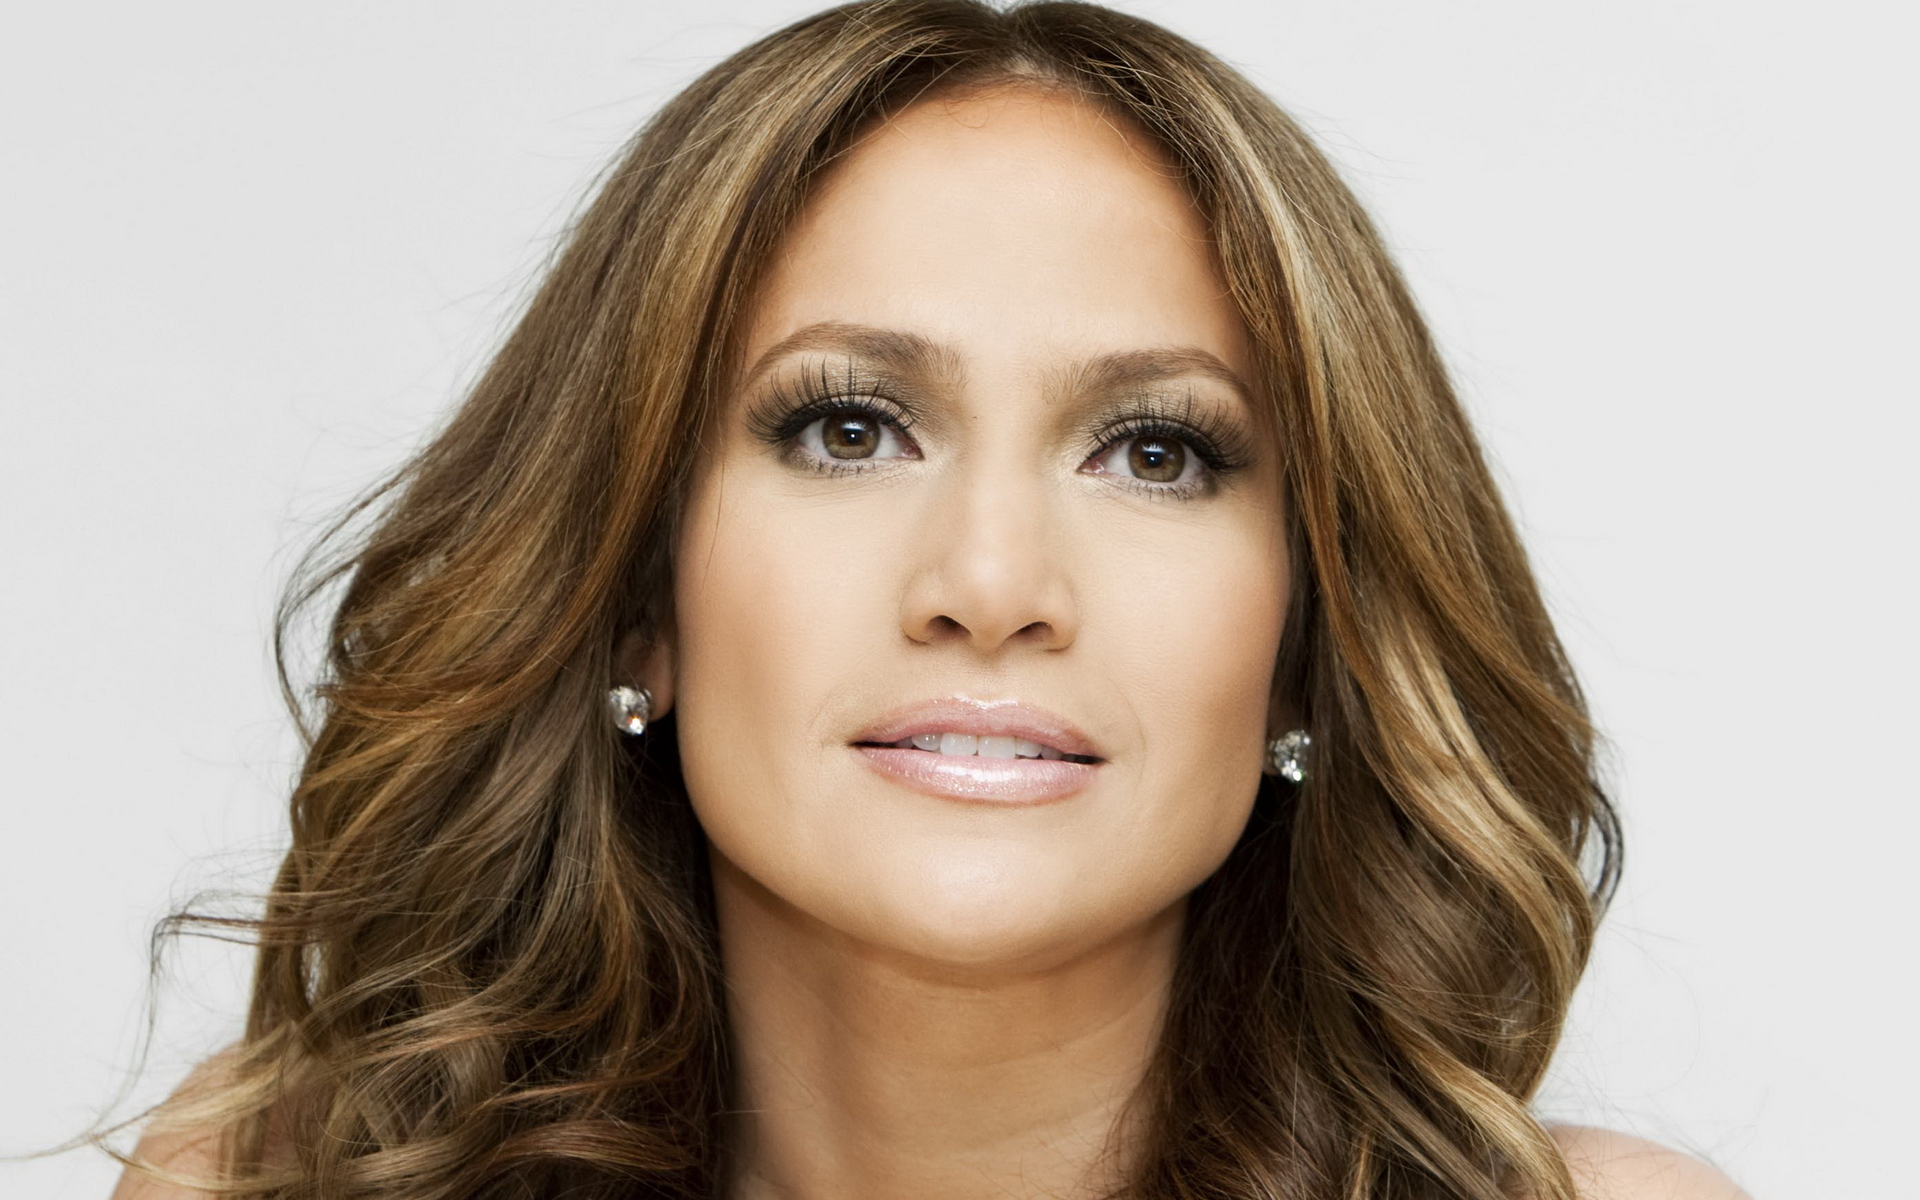 TV: Jennifer Lopez to Headline NBC Cop Drama Shades of Bl | Women and Hollywood